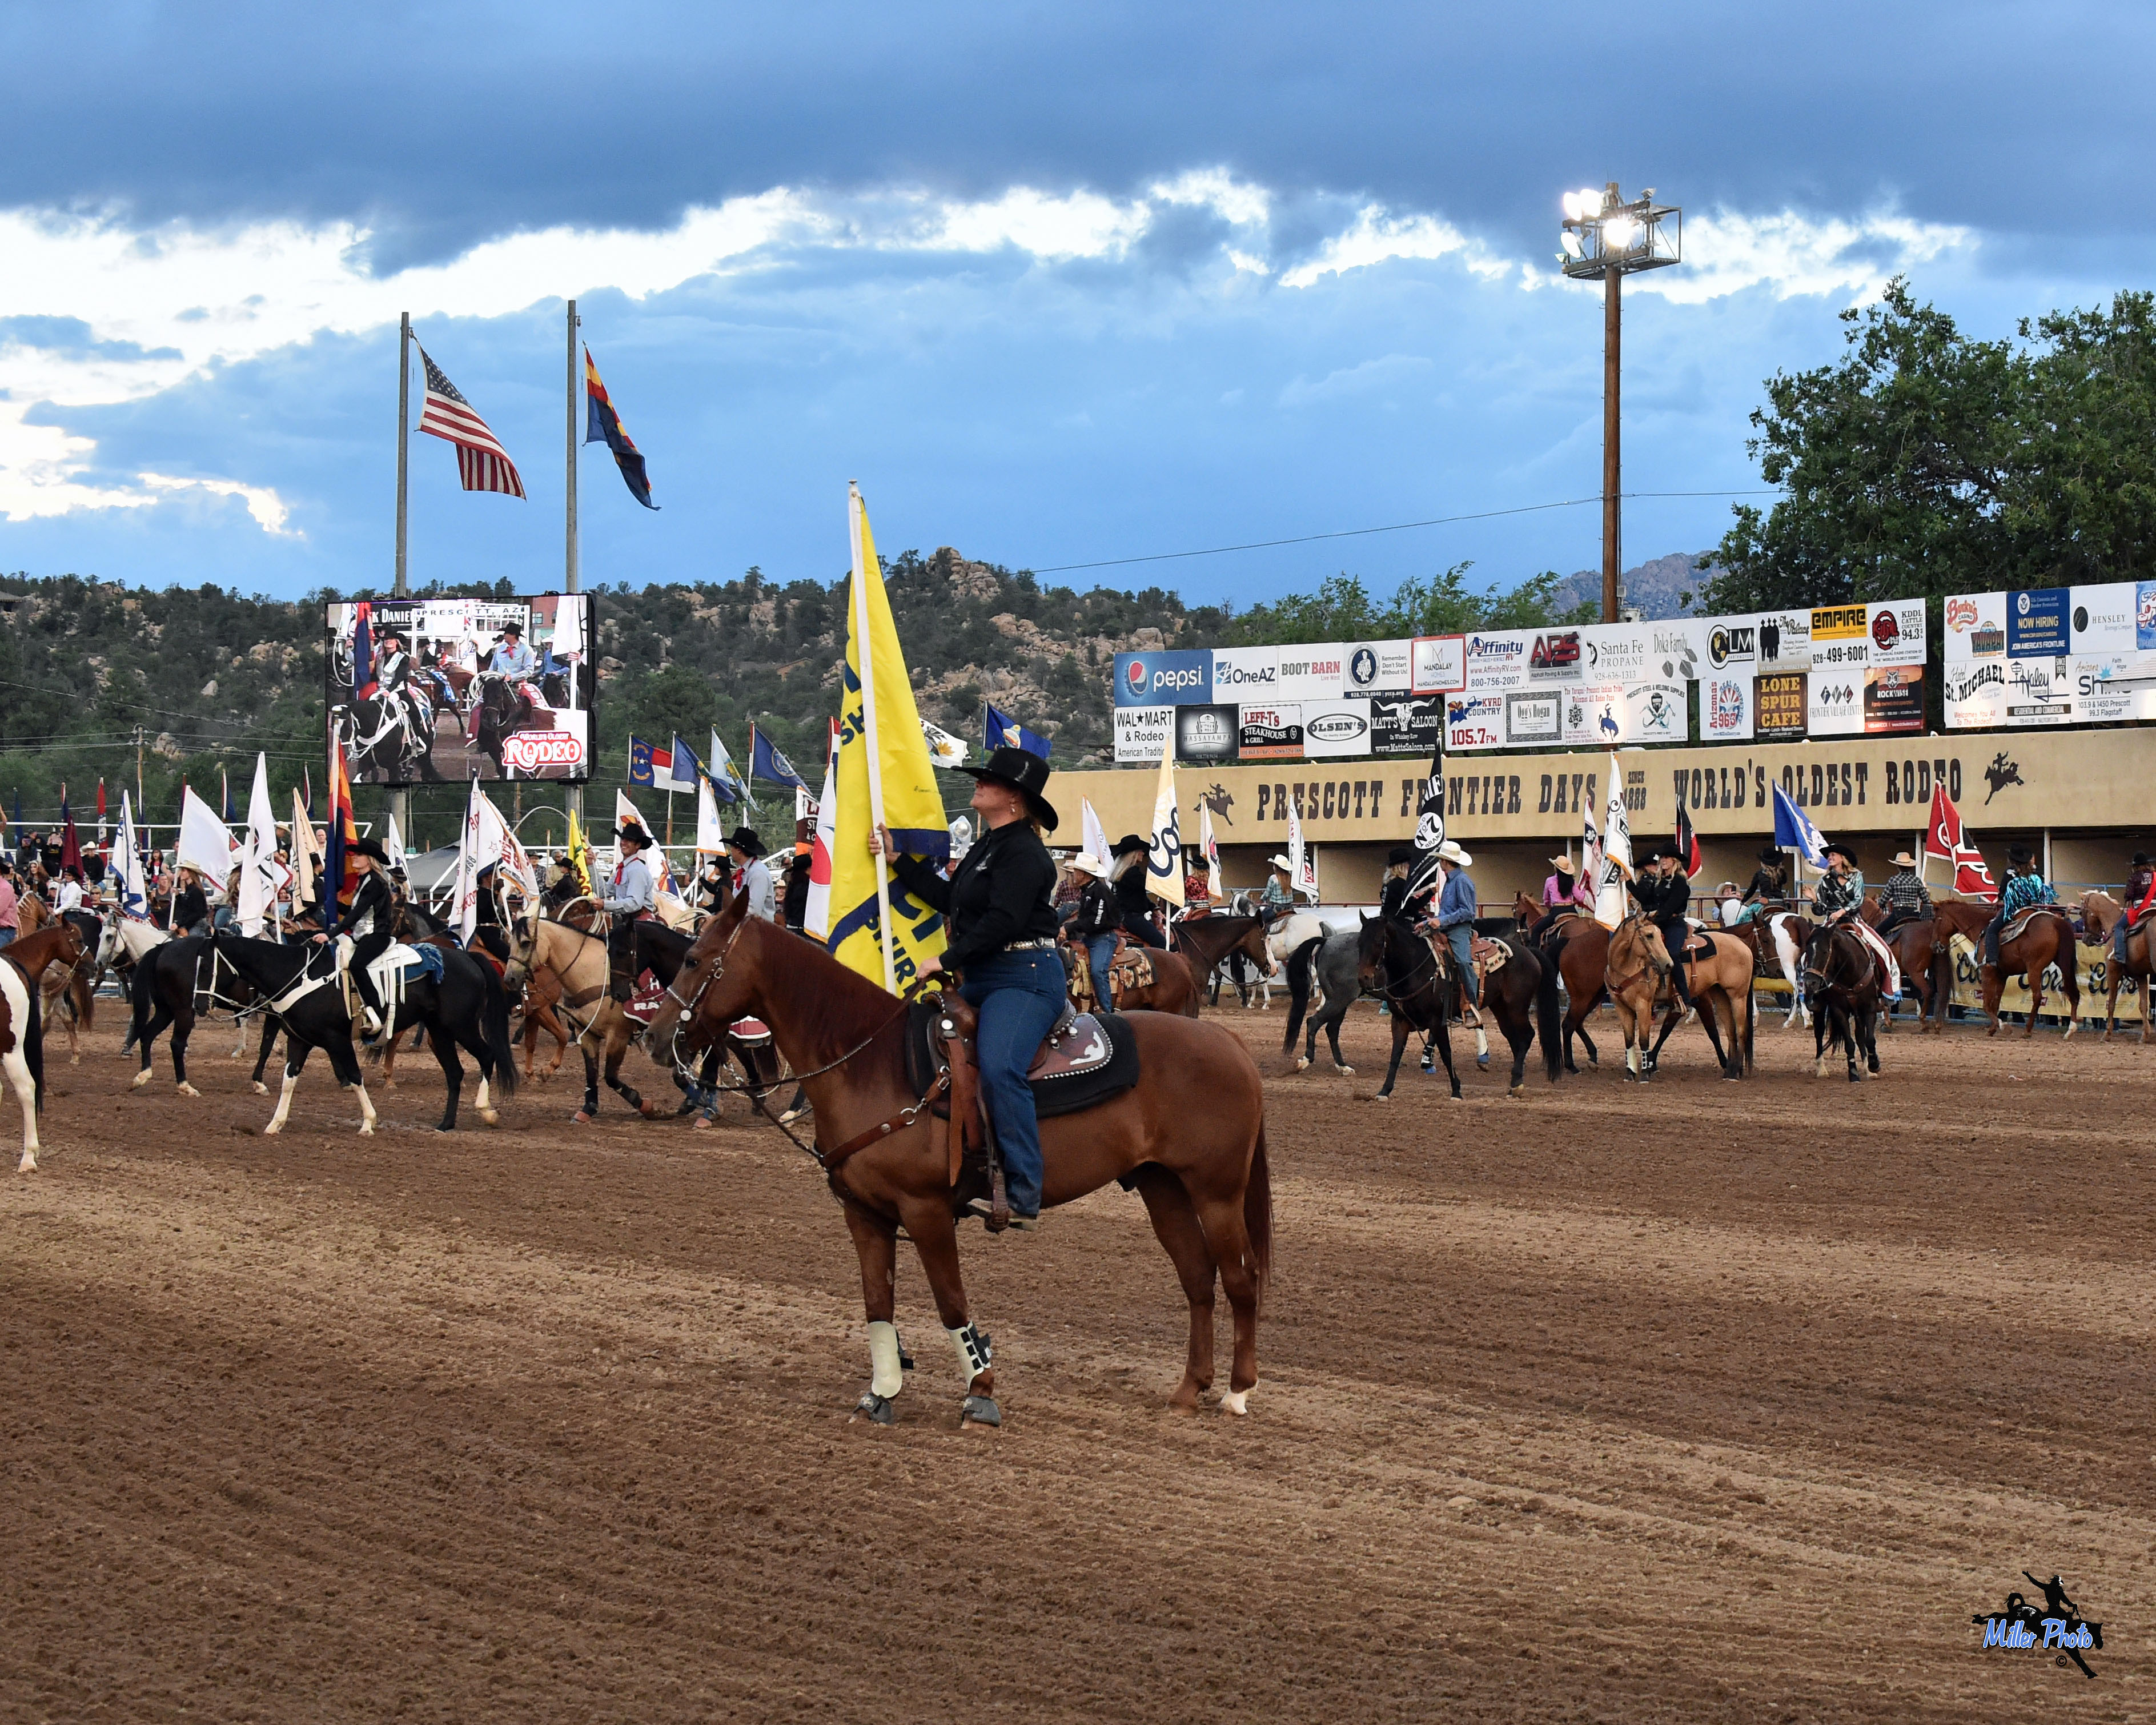 130th Annual Prescott Frontier Days Amp World S Oldest Rodeo